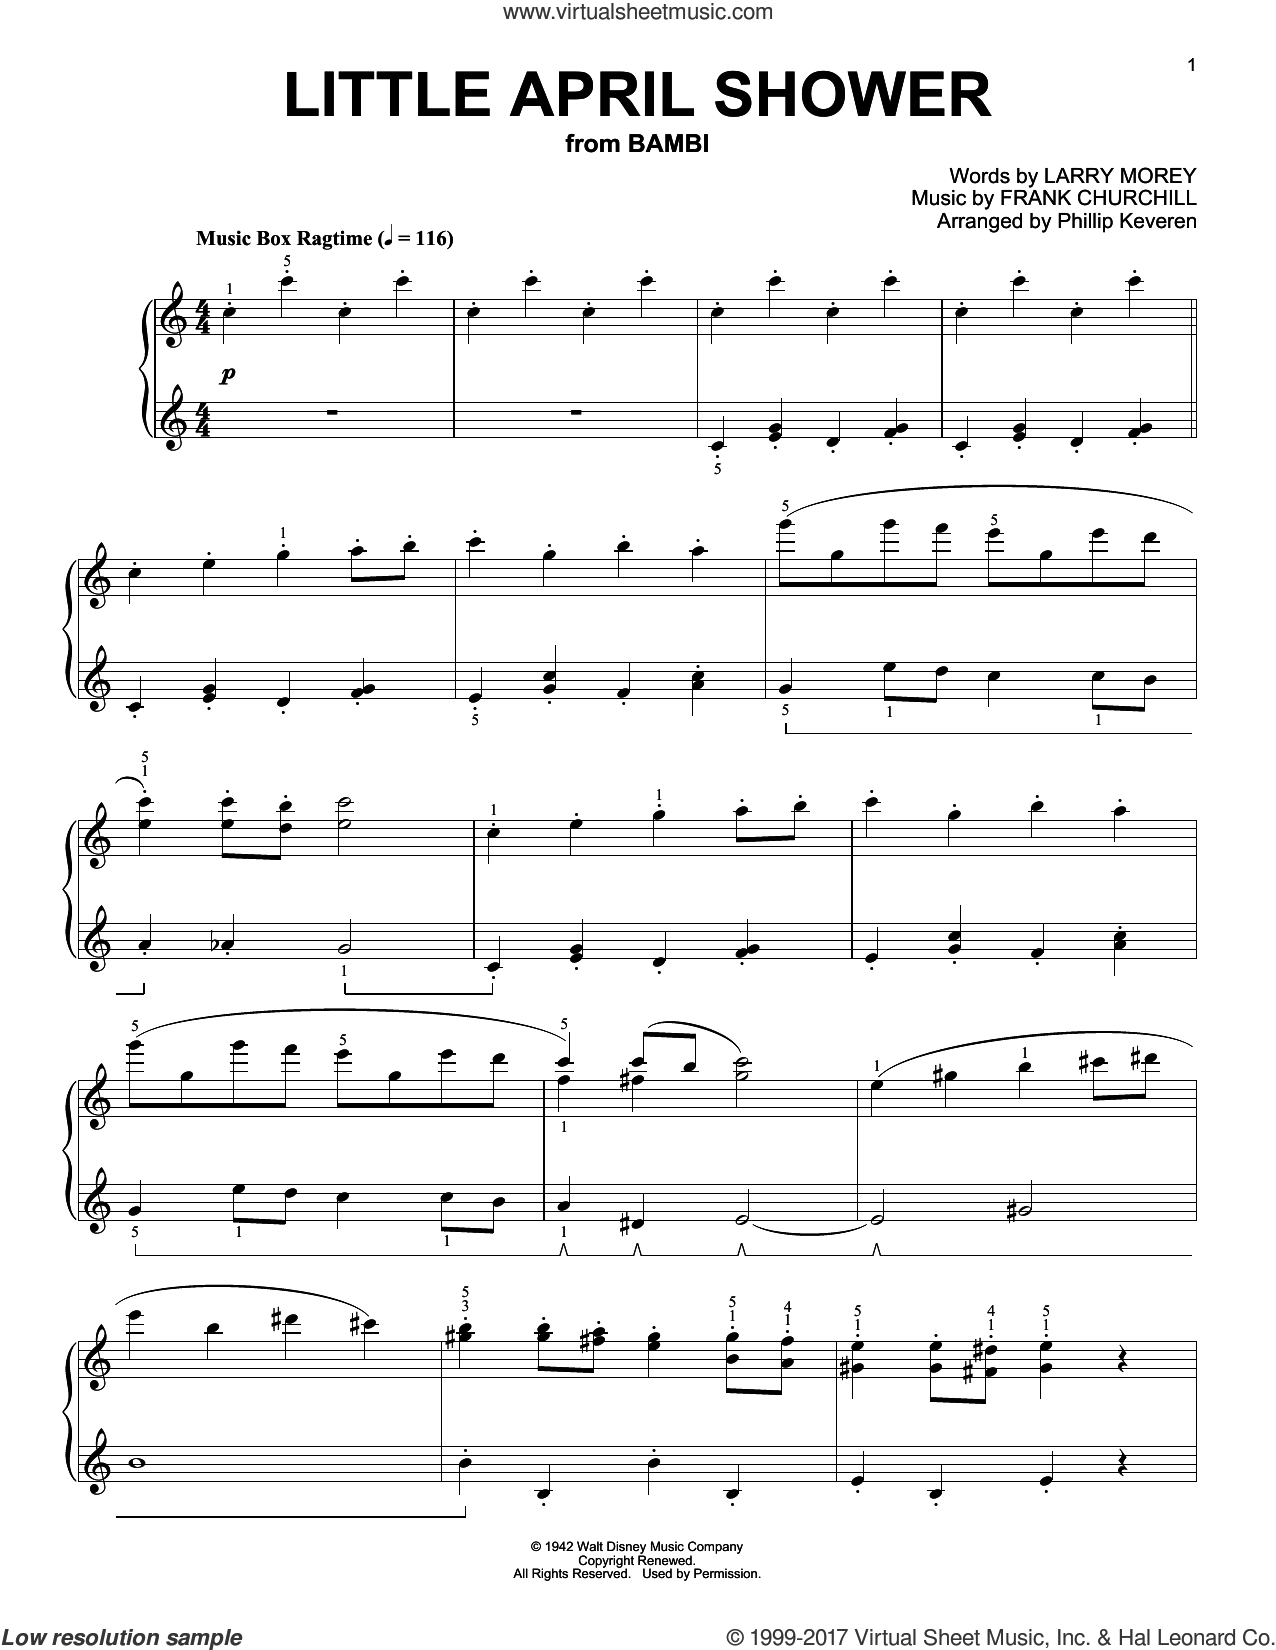 Little April Shower [Ragtime version] (arr. Phillip Keveren) sheet music for piano solo by Larry Morey, Phillip Keveren and Frank Churchill, intermediate skill level